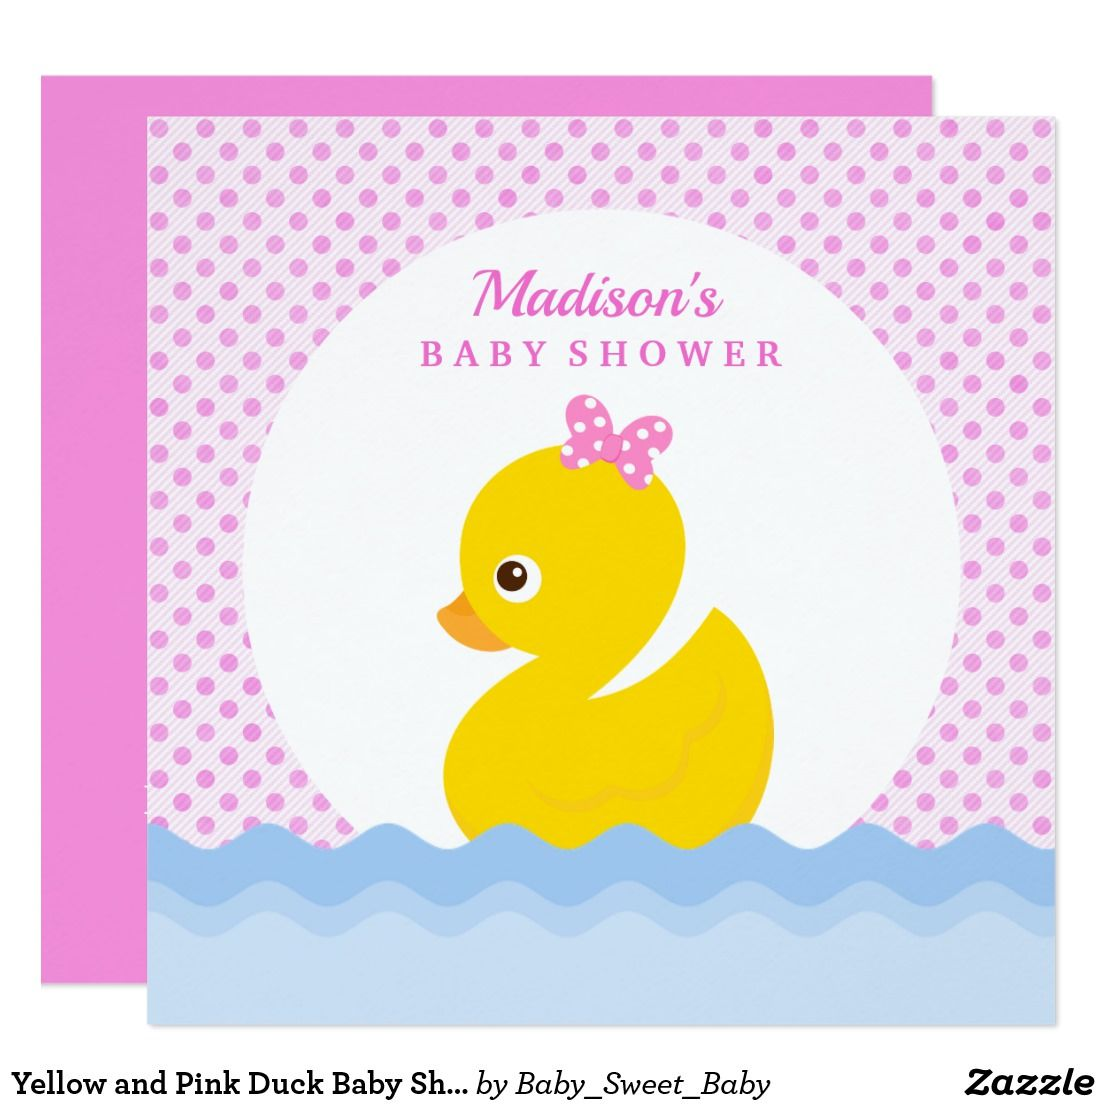 Yellow and Pink Duck Baby Shower Invitation | Duck baby showers and ...